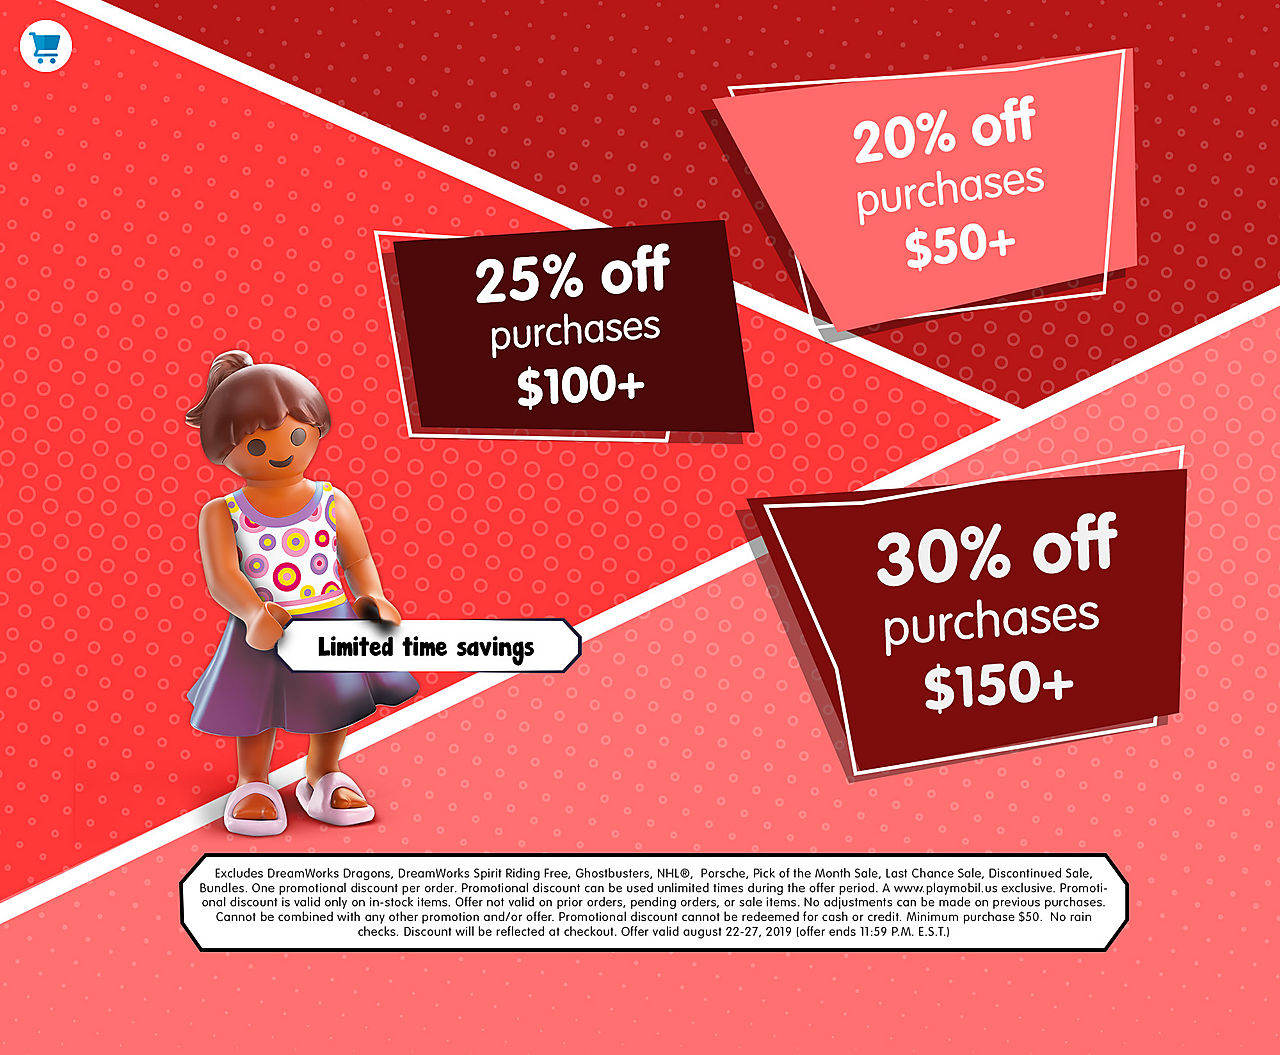 SHOP_PROMO_TIERED_2019_2x2_US